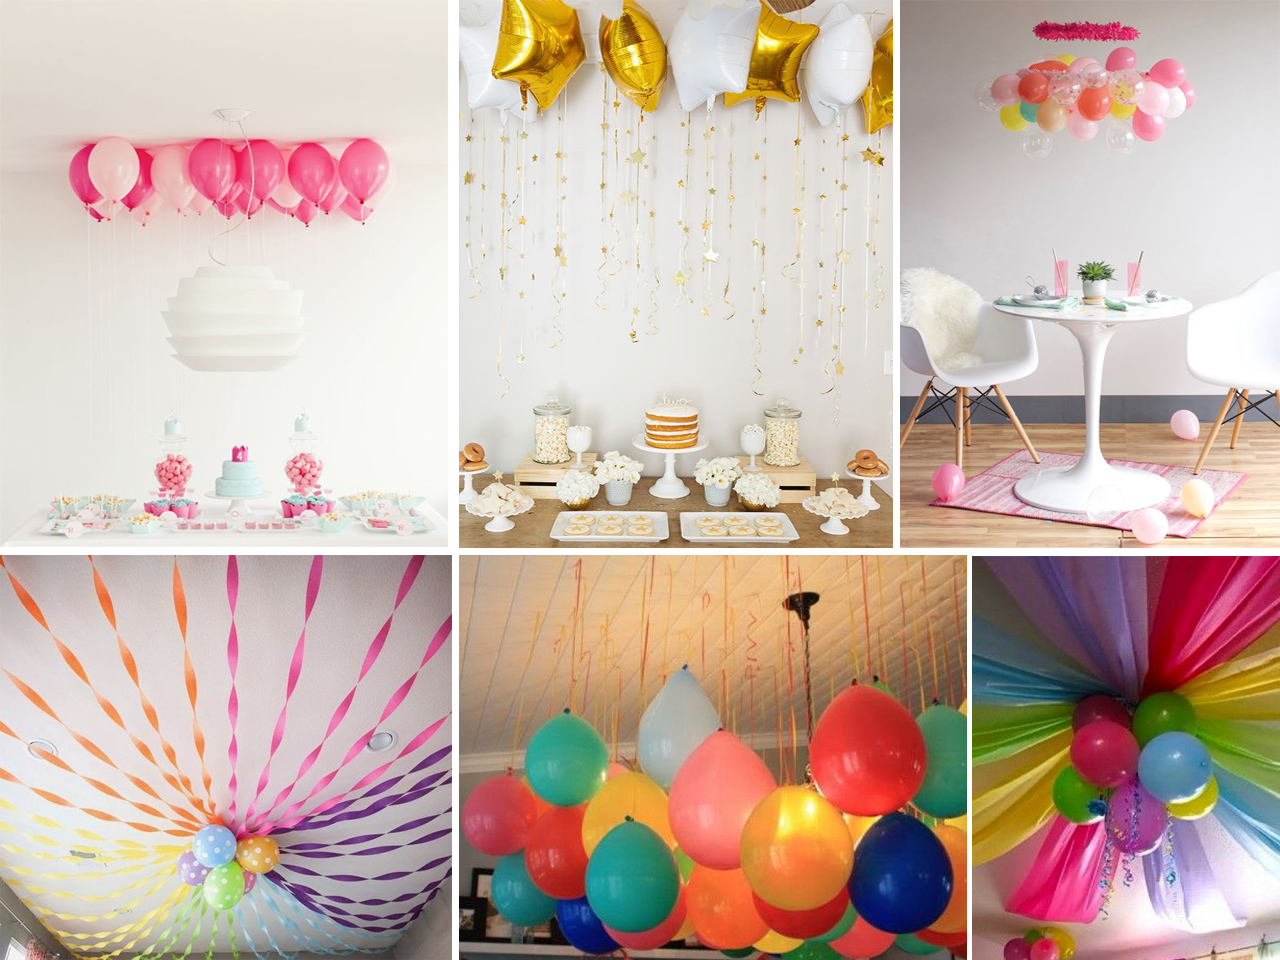 Descubre c mo decorar con globos con estas fant sticas ideas for Como decorar